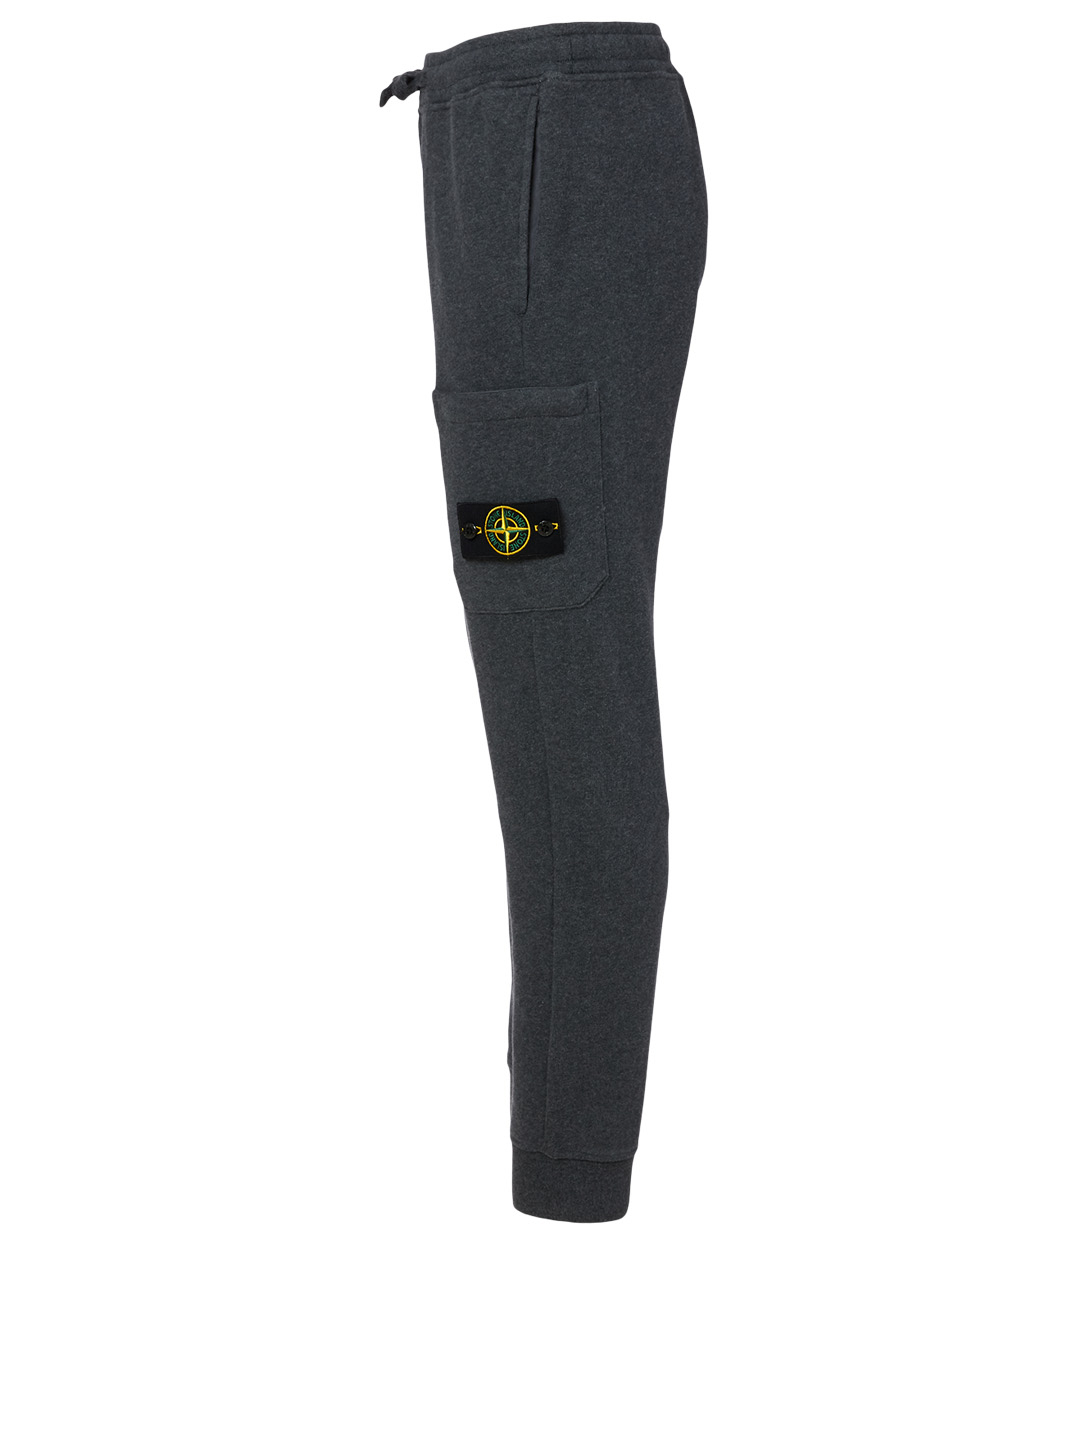 STONE ISLAND Cotton Jogger Pants Men's Black